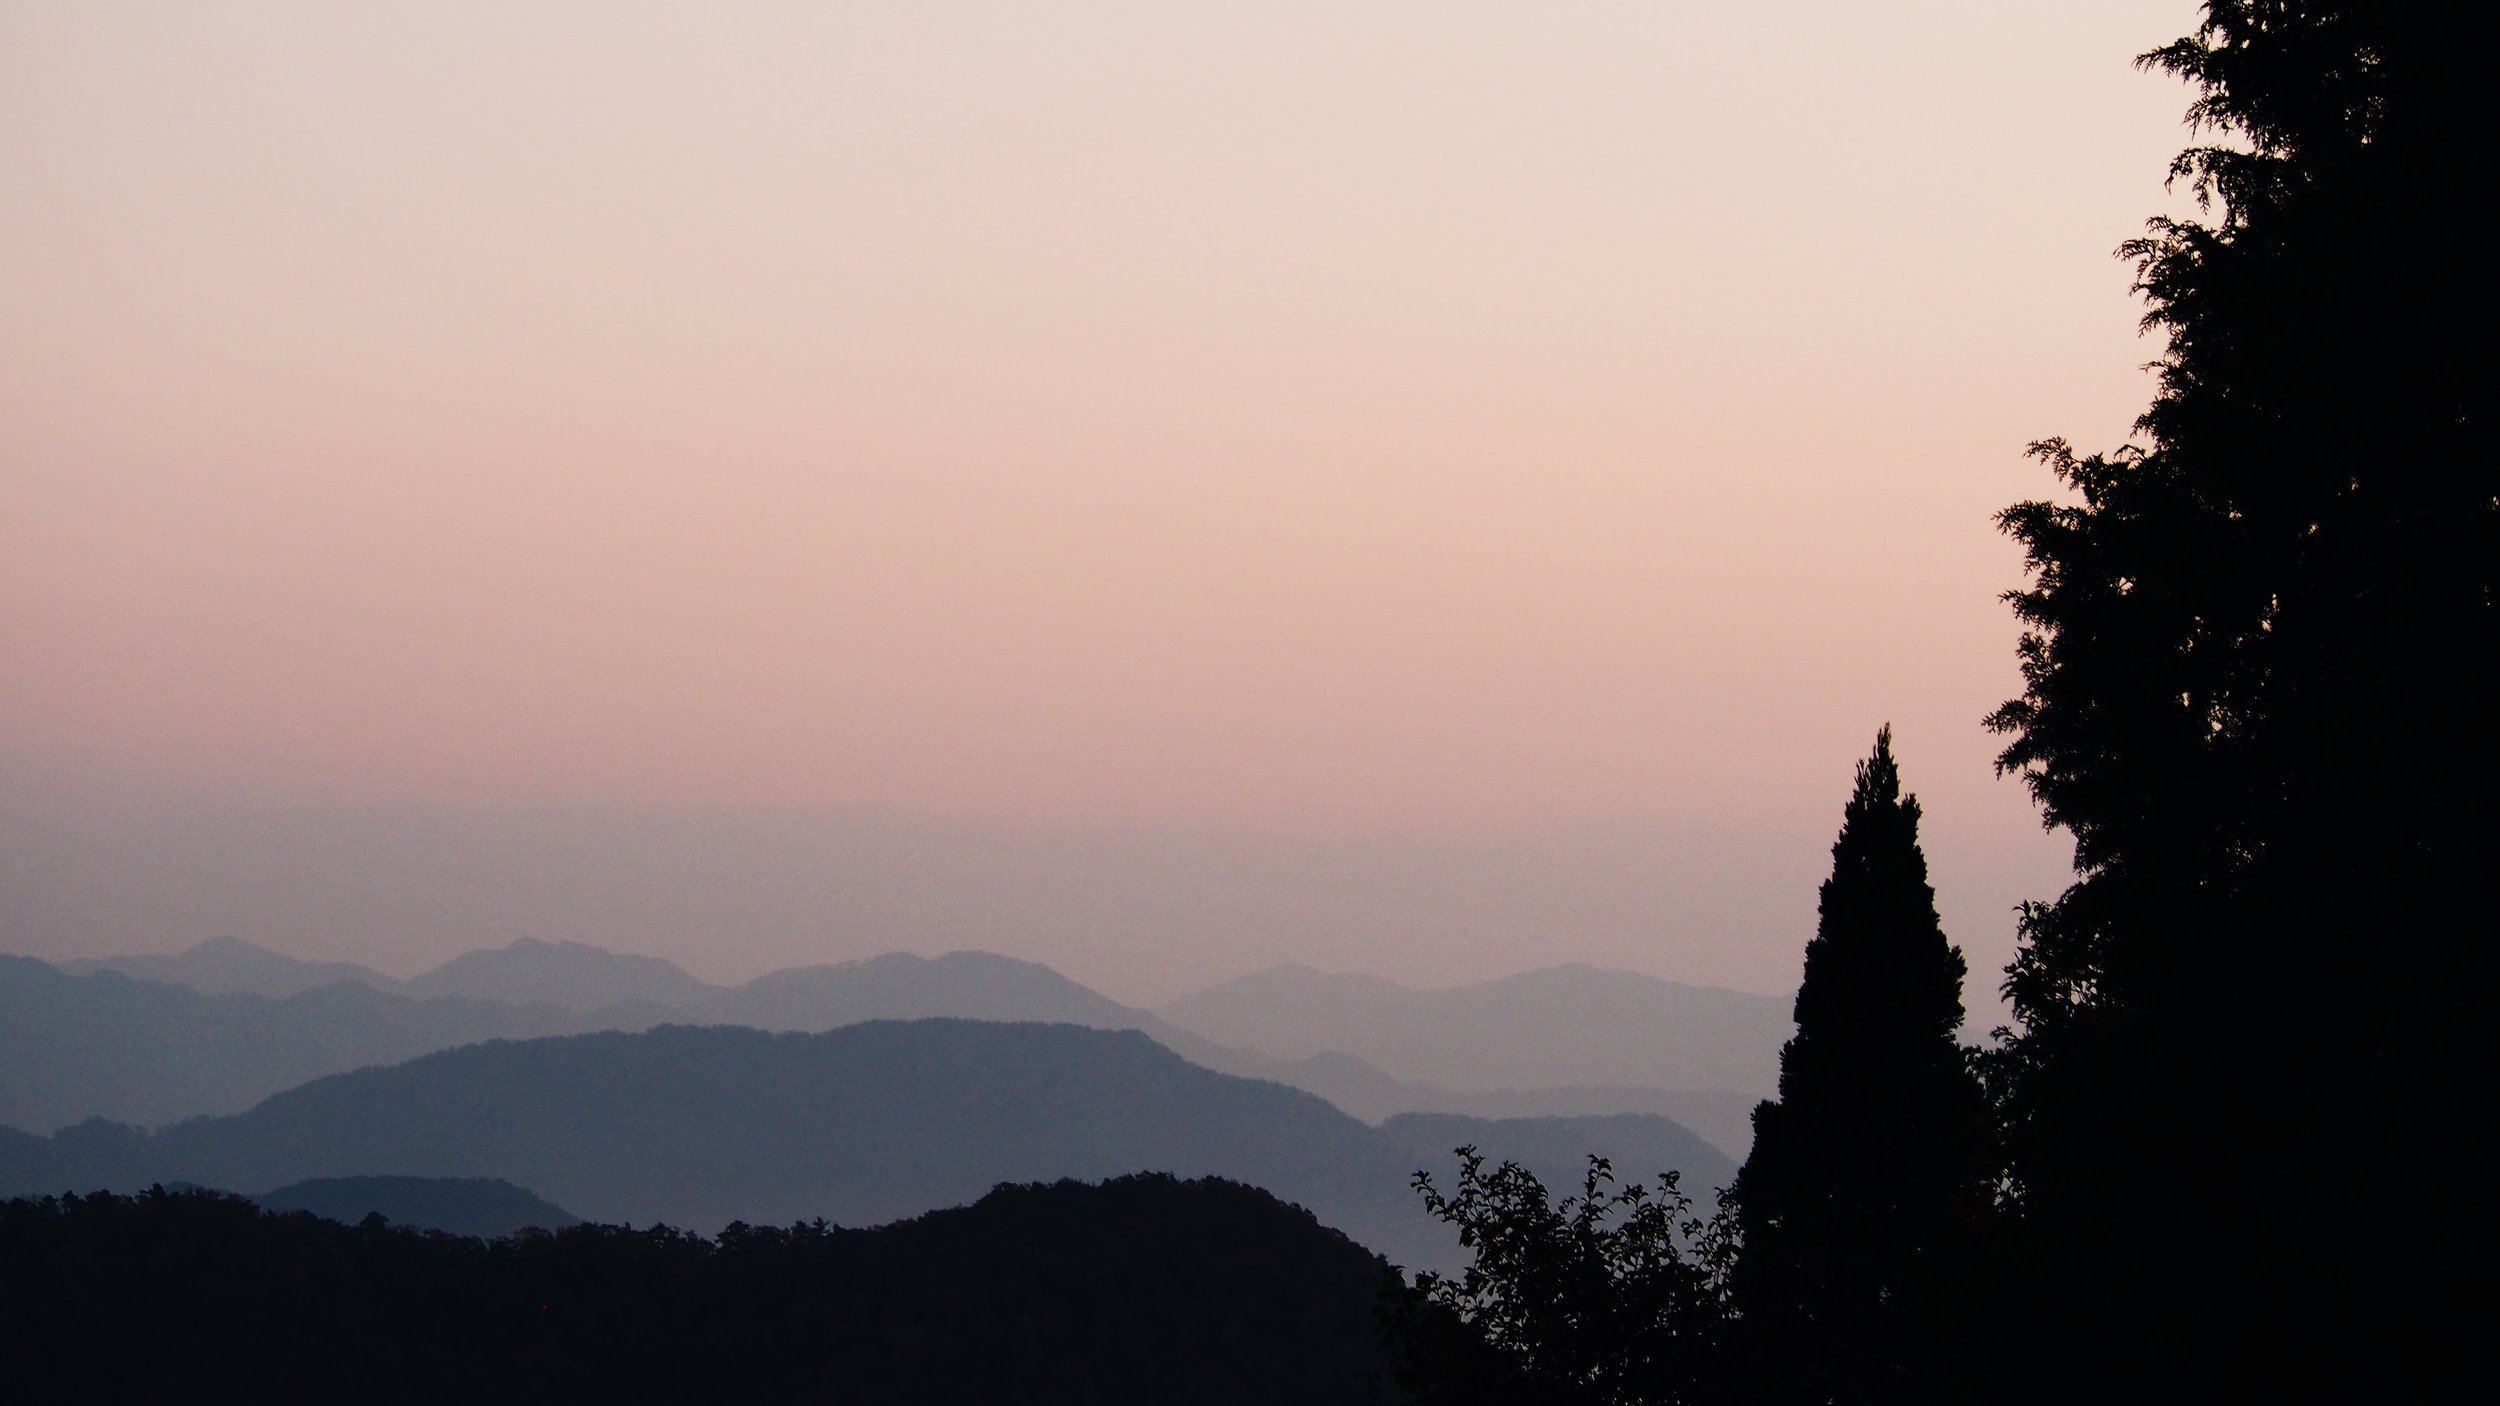 Mountains in the distance in the early morning sunrise light